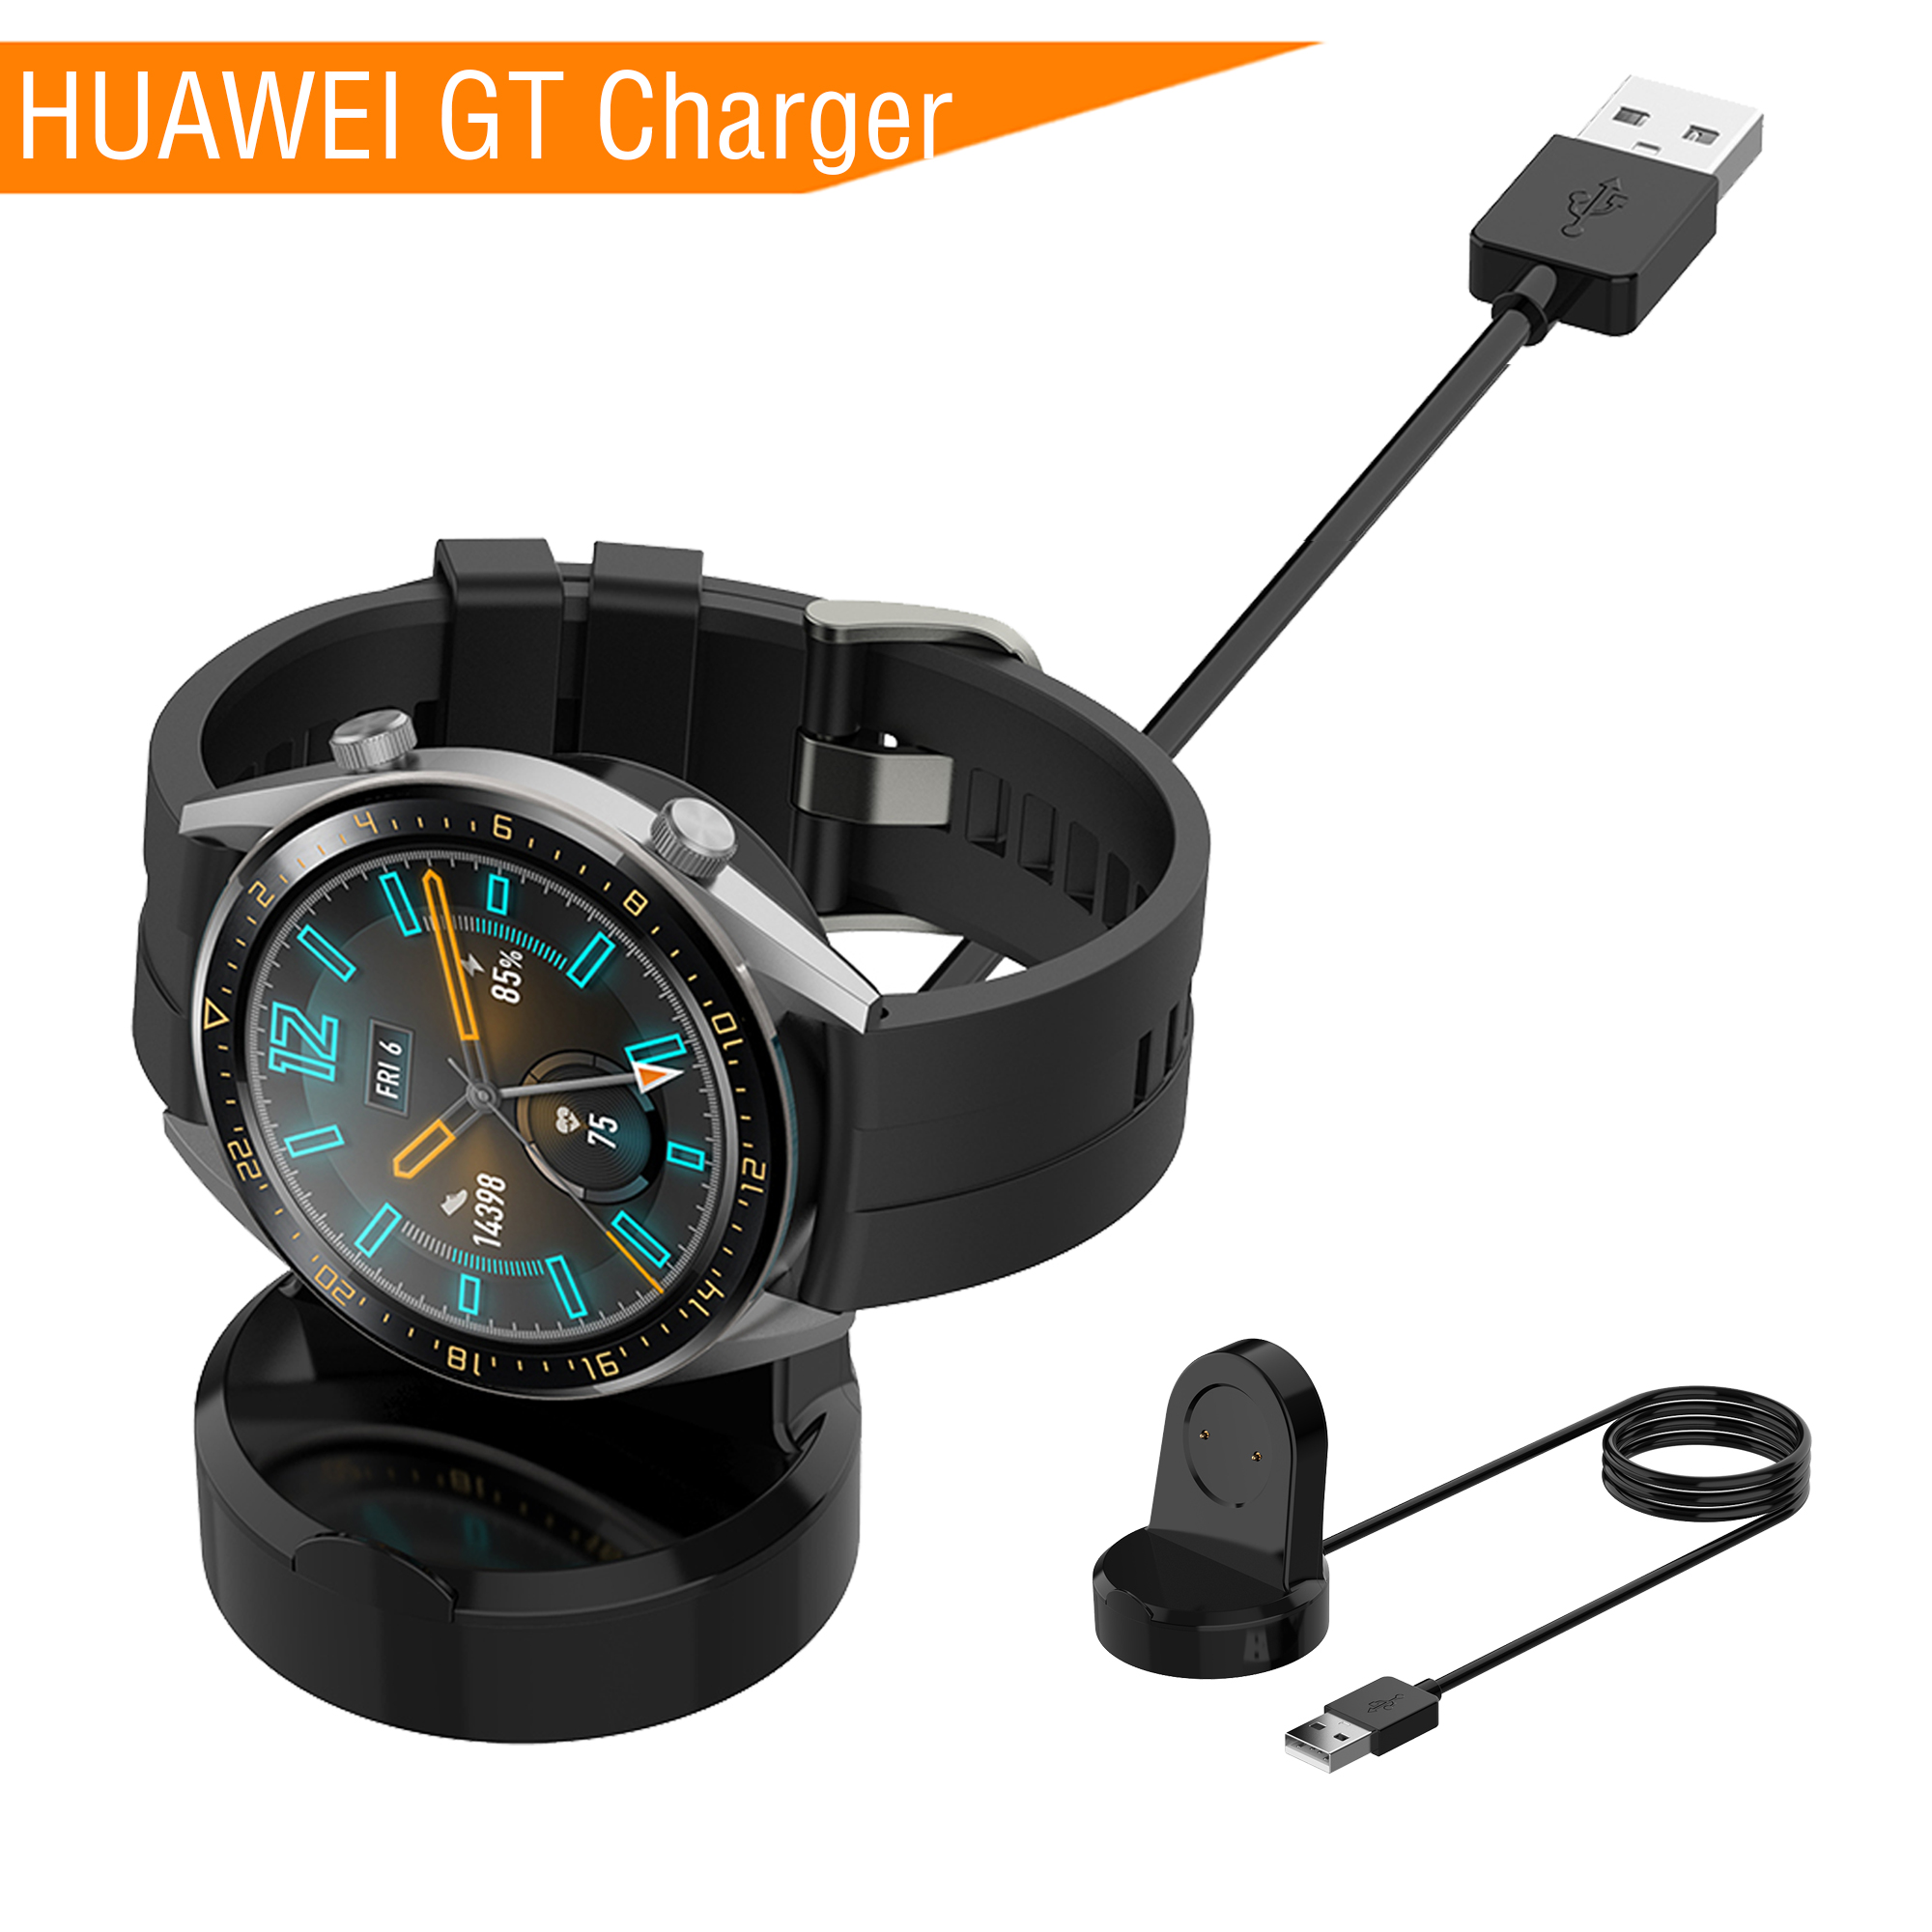 2019 USB Chargers for Huawei GT Smart Watch Wristband Bracelet Charging Cable Band Accessories